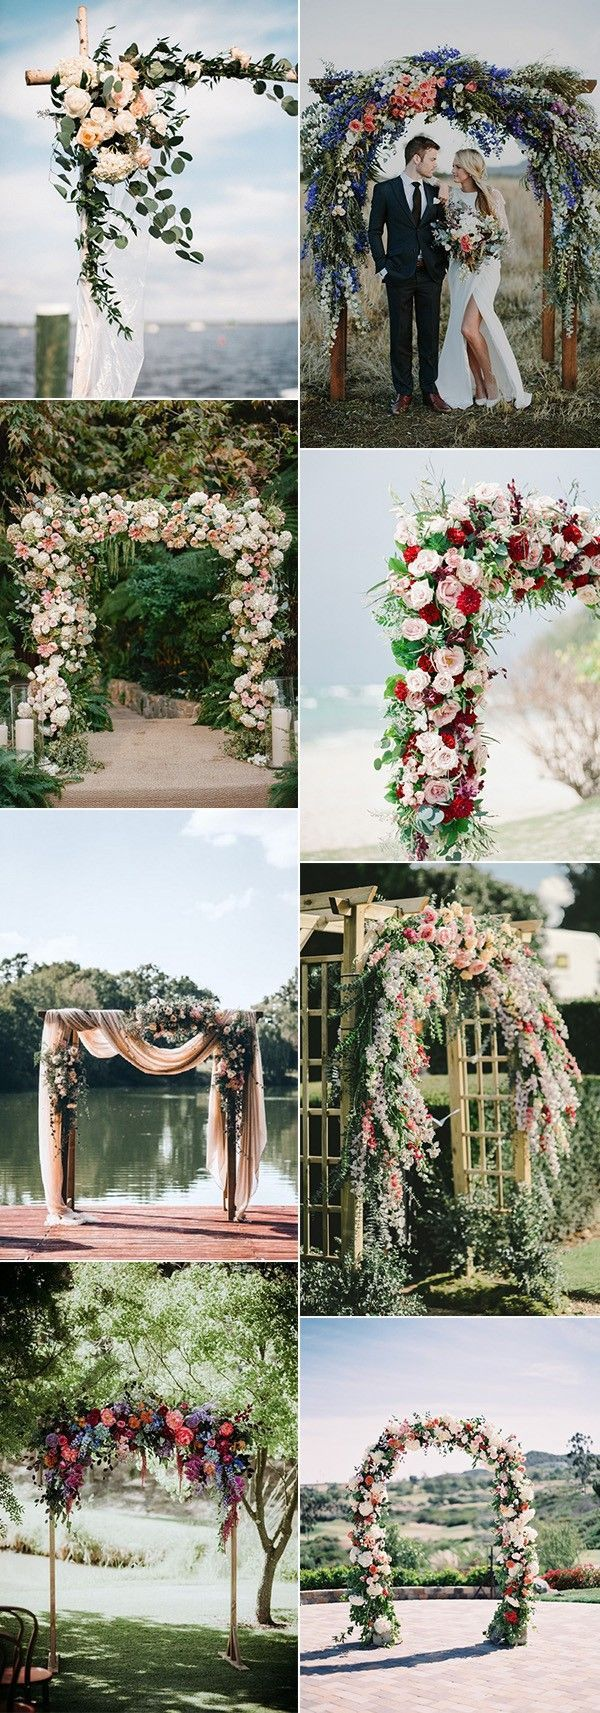 2018 trending floral wedding arch decoration ideas weddingflowers 2018 trending floral wedding arch decoration ideas weddingflowers wedding flowers pinterest floral wedding and weddings junglespirit Images